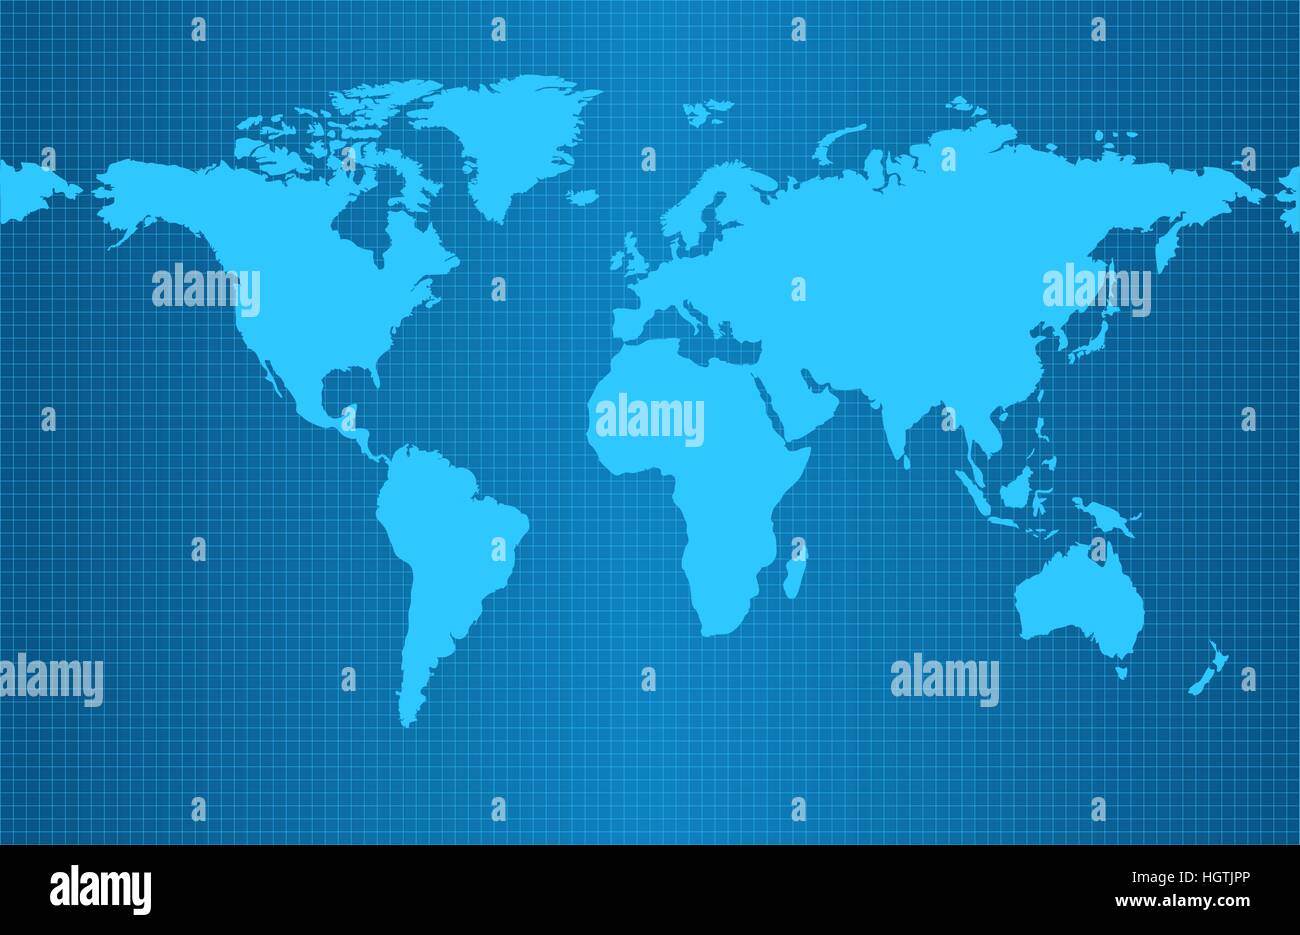 Earth Map On Blue Gradient Background With Grid And All Major - Major continents